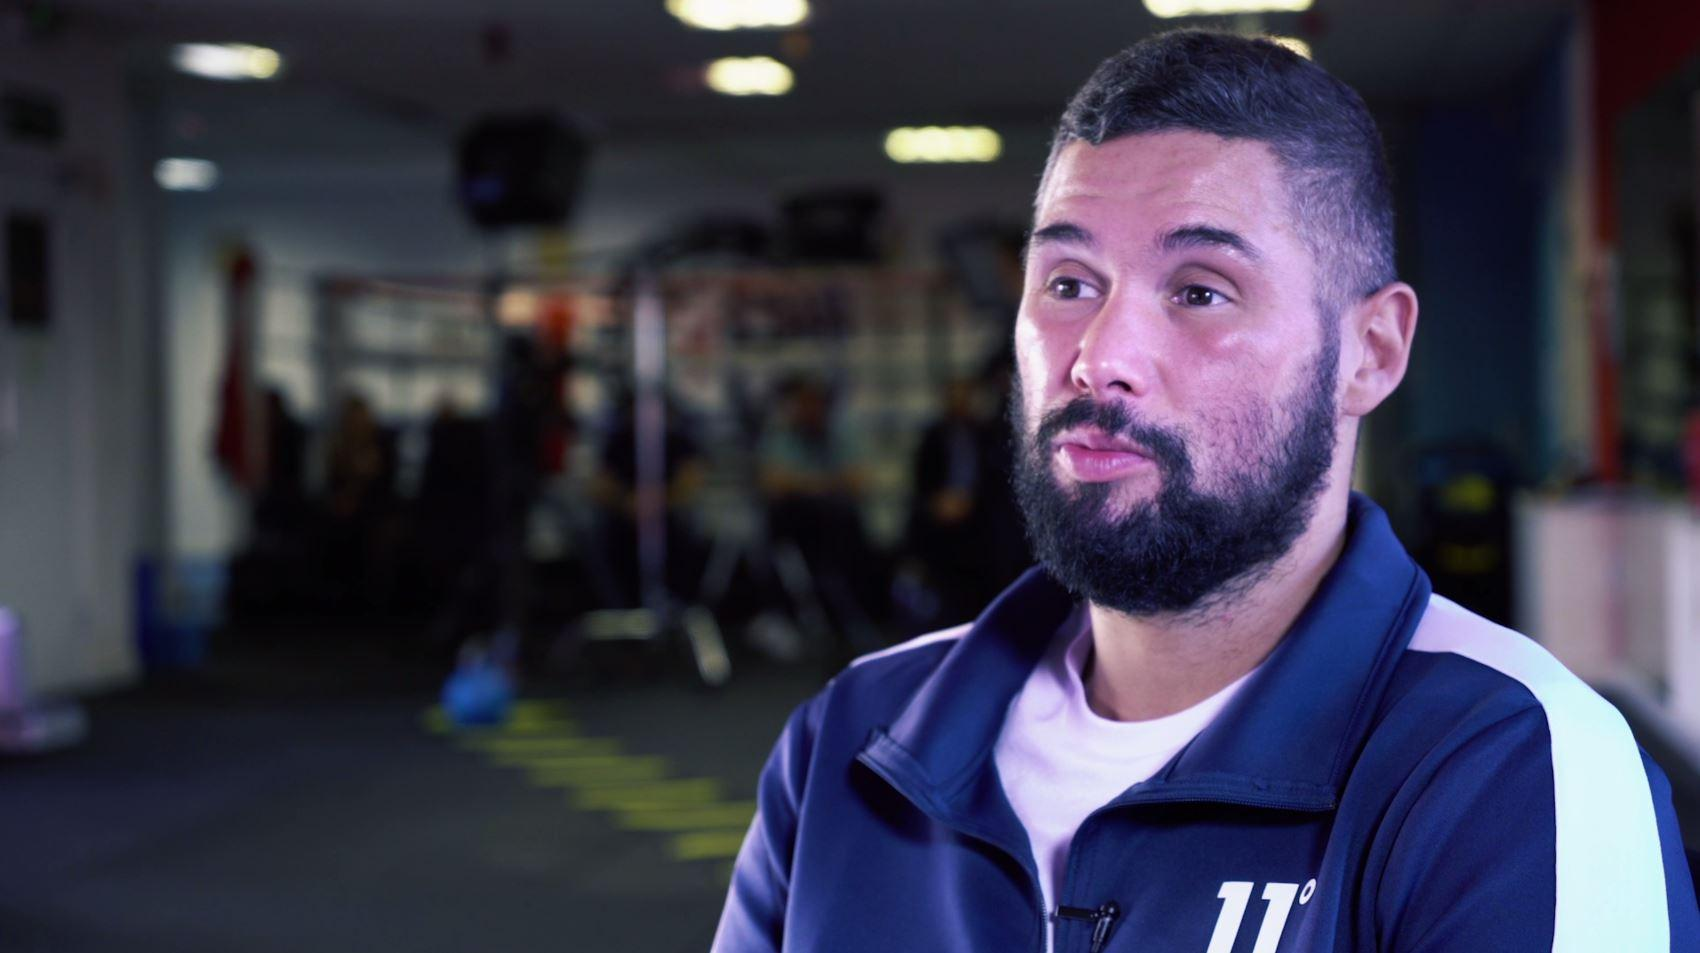 Tony Bellew is eyeing a move into the UFC after retiring from boxing